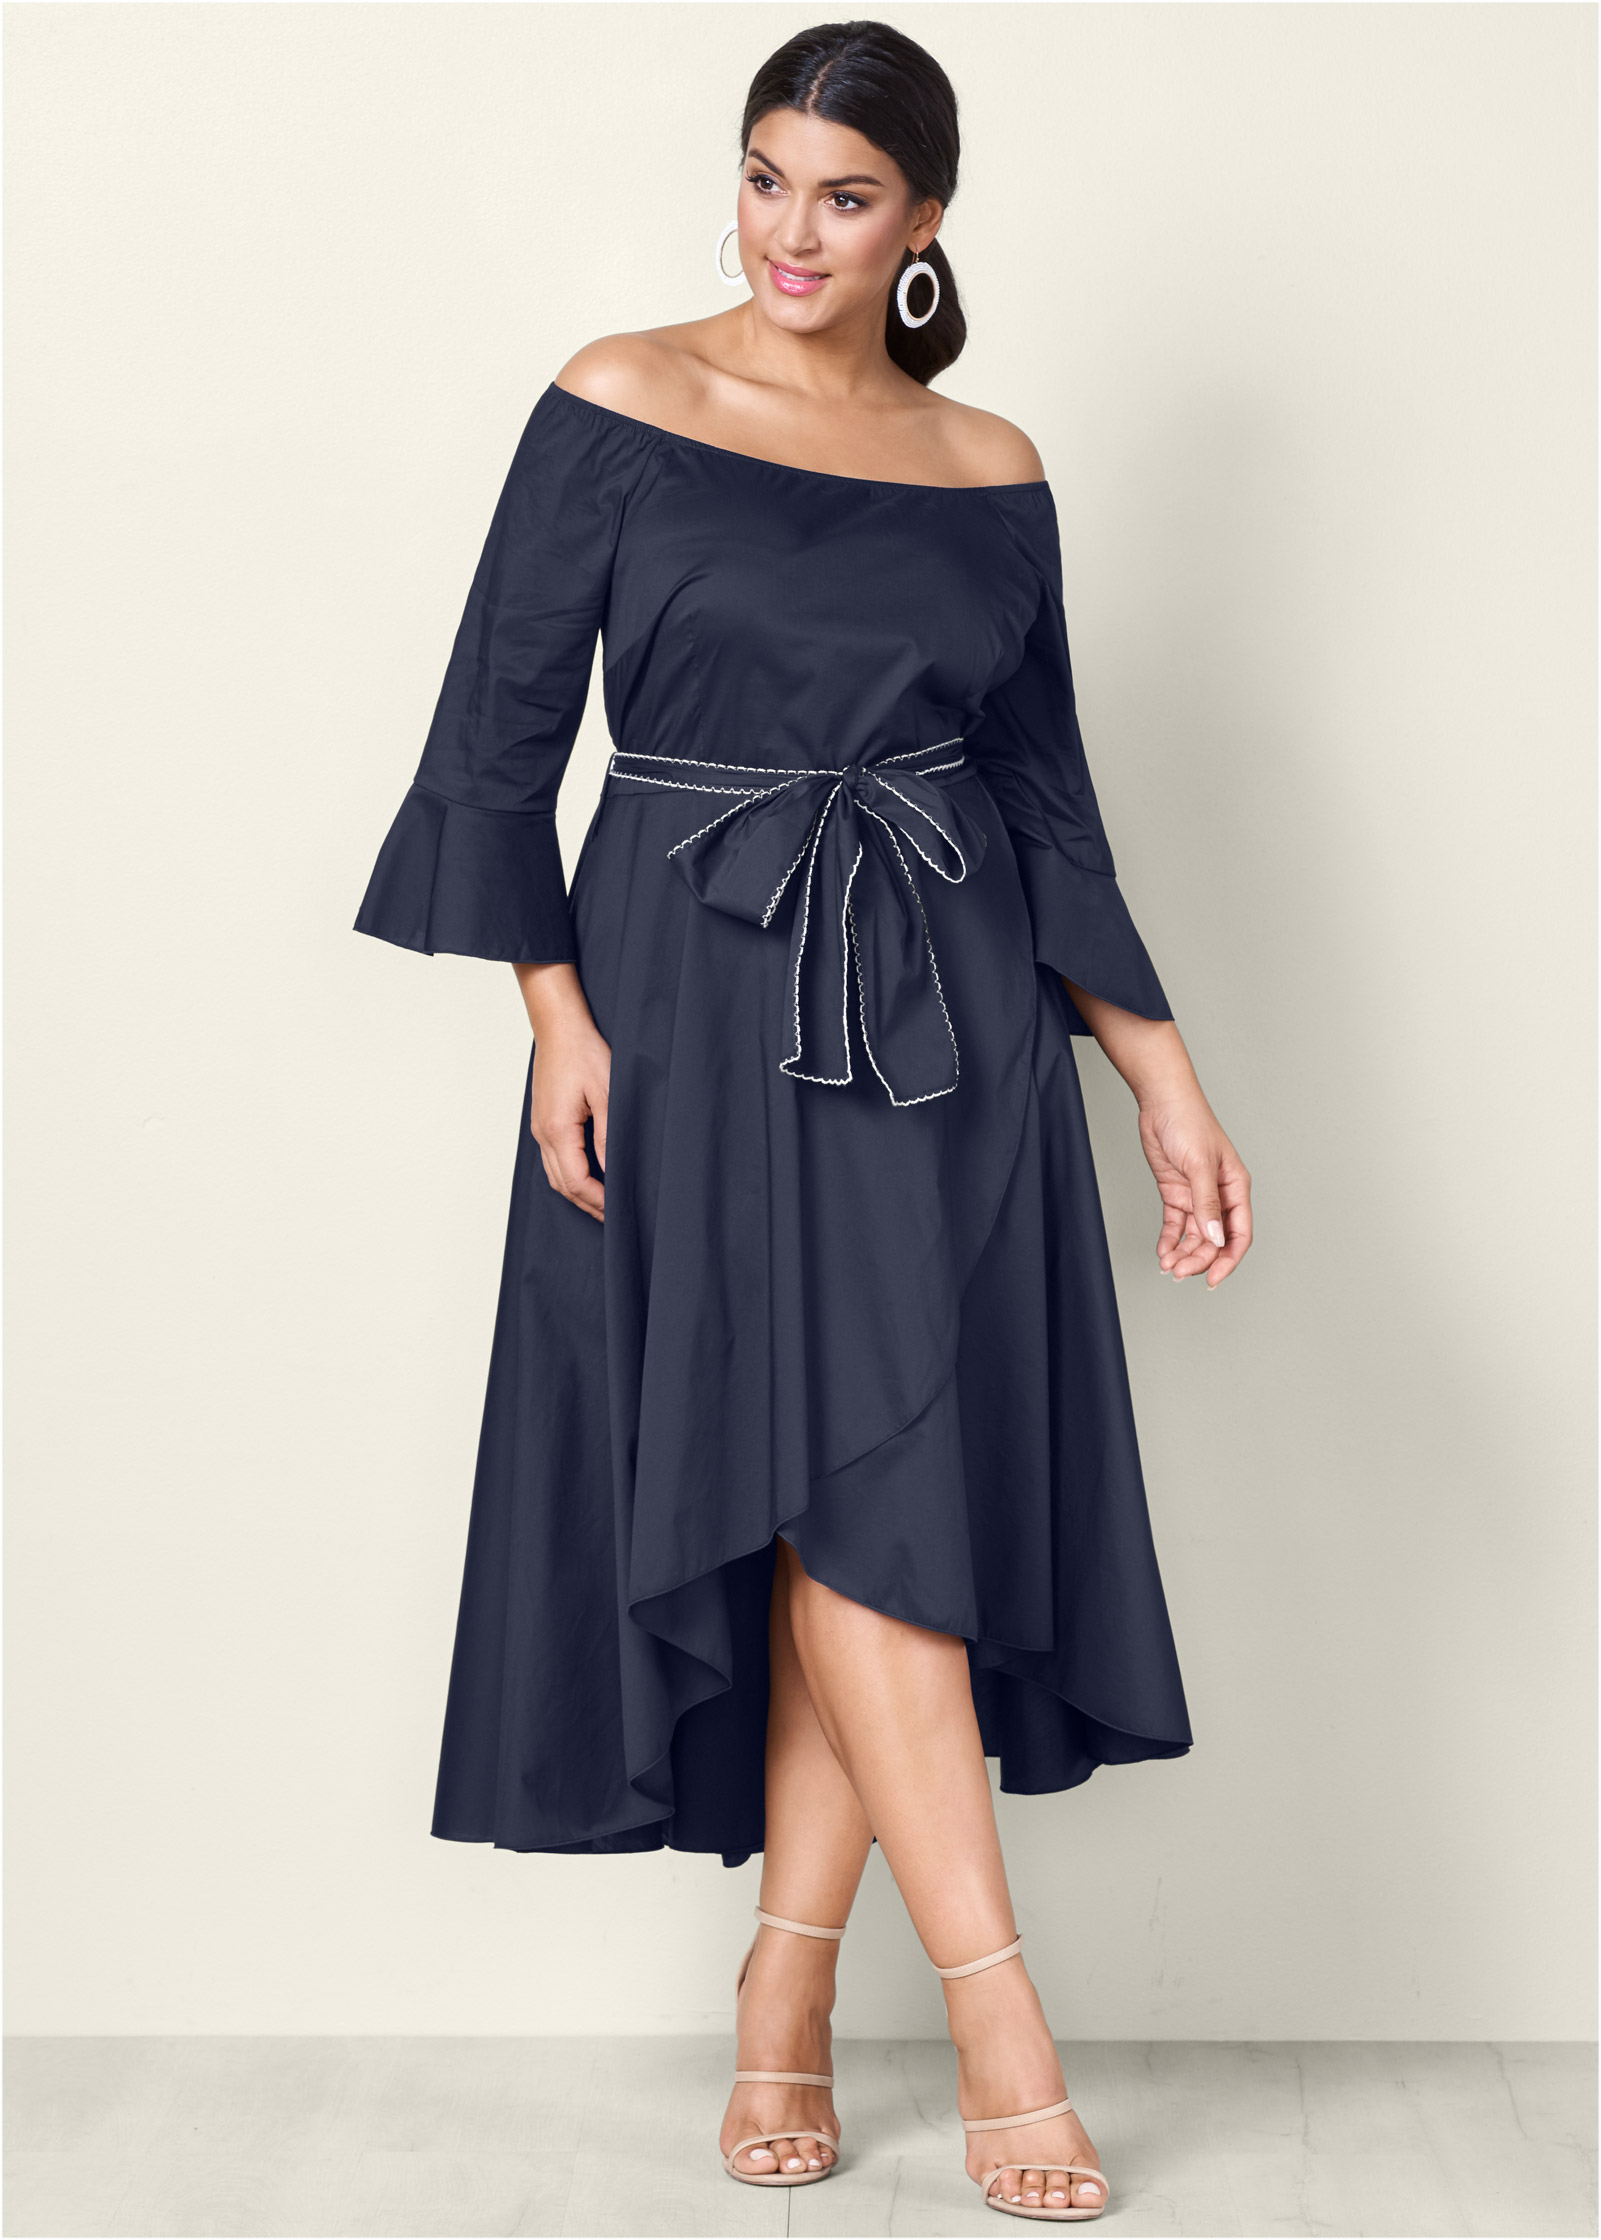 High Low Dresses for Women